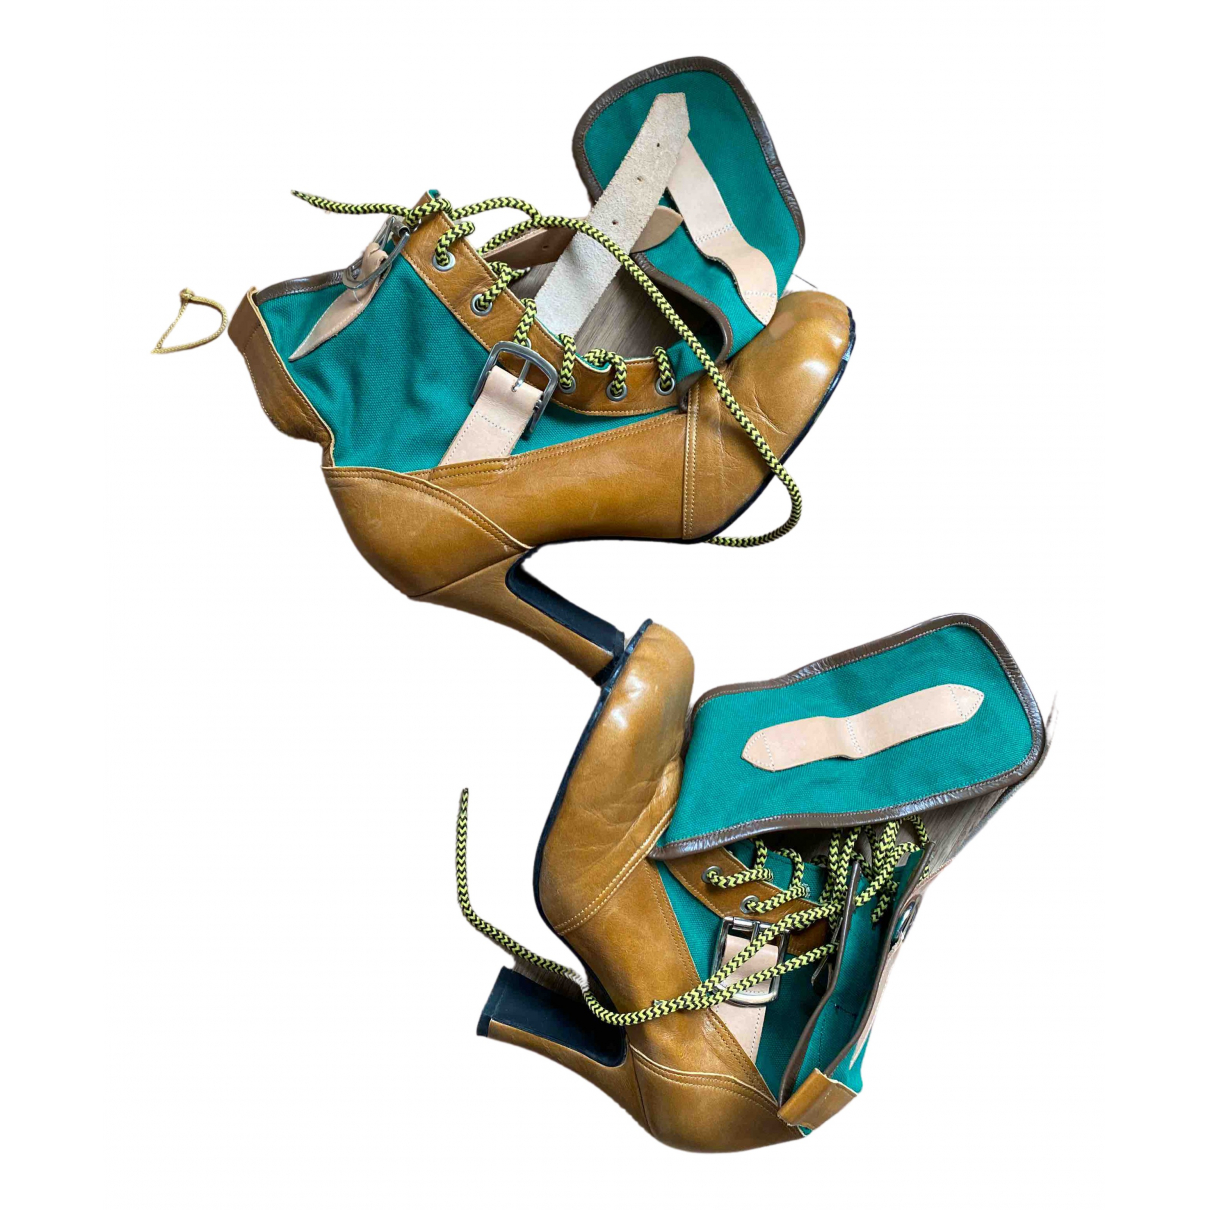 Vivienne Westwood N Multicolour Leather Ankle boots for Women 6 UK